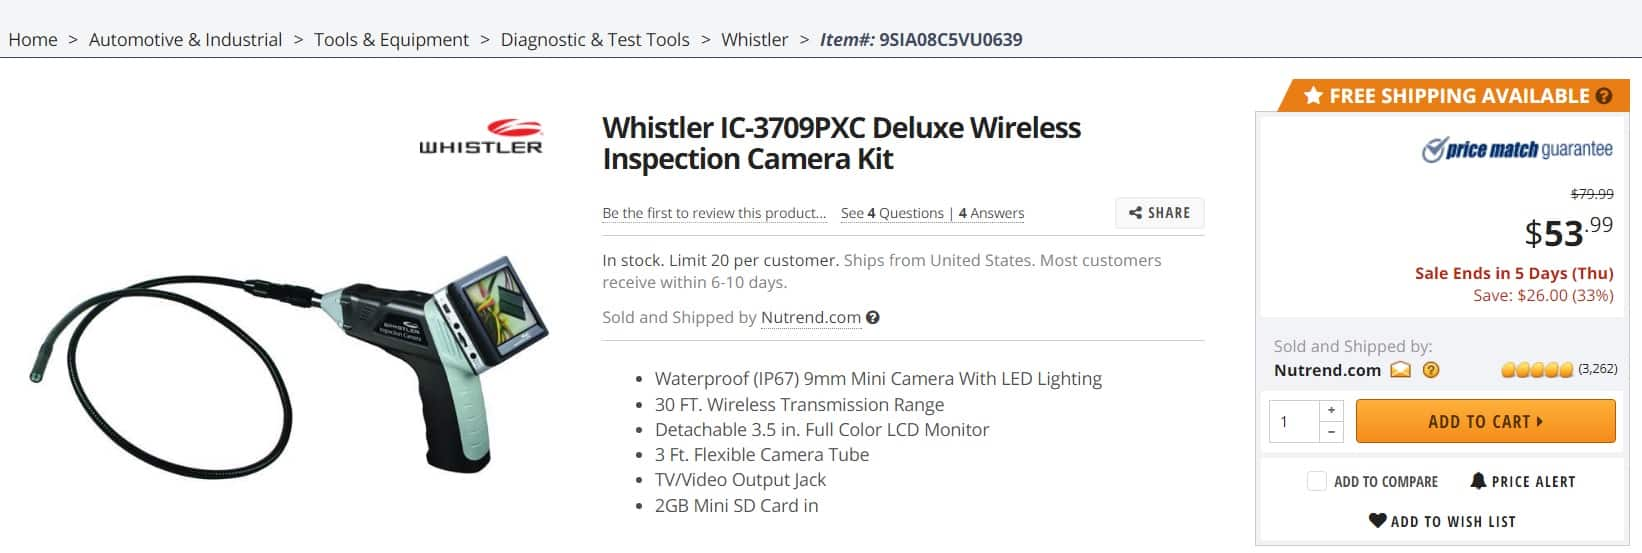 Whistler IC-3709PXC Deluxe Wireless Inspection Camera Kit w/Detachable 3.5 in. Full Color LCD Monitor - Newegg : $53.99